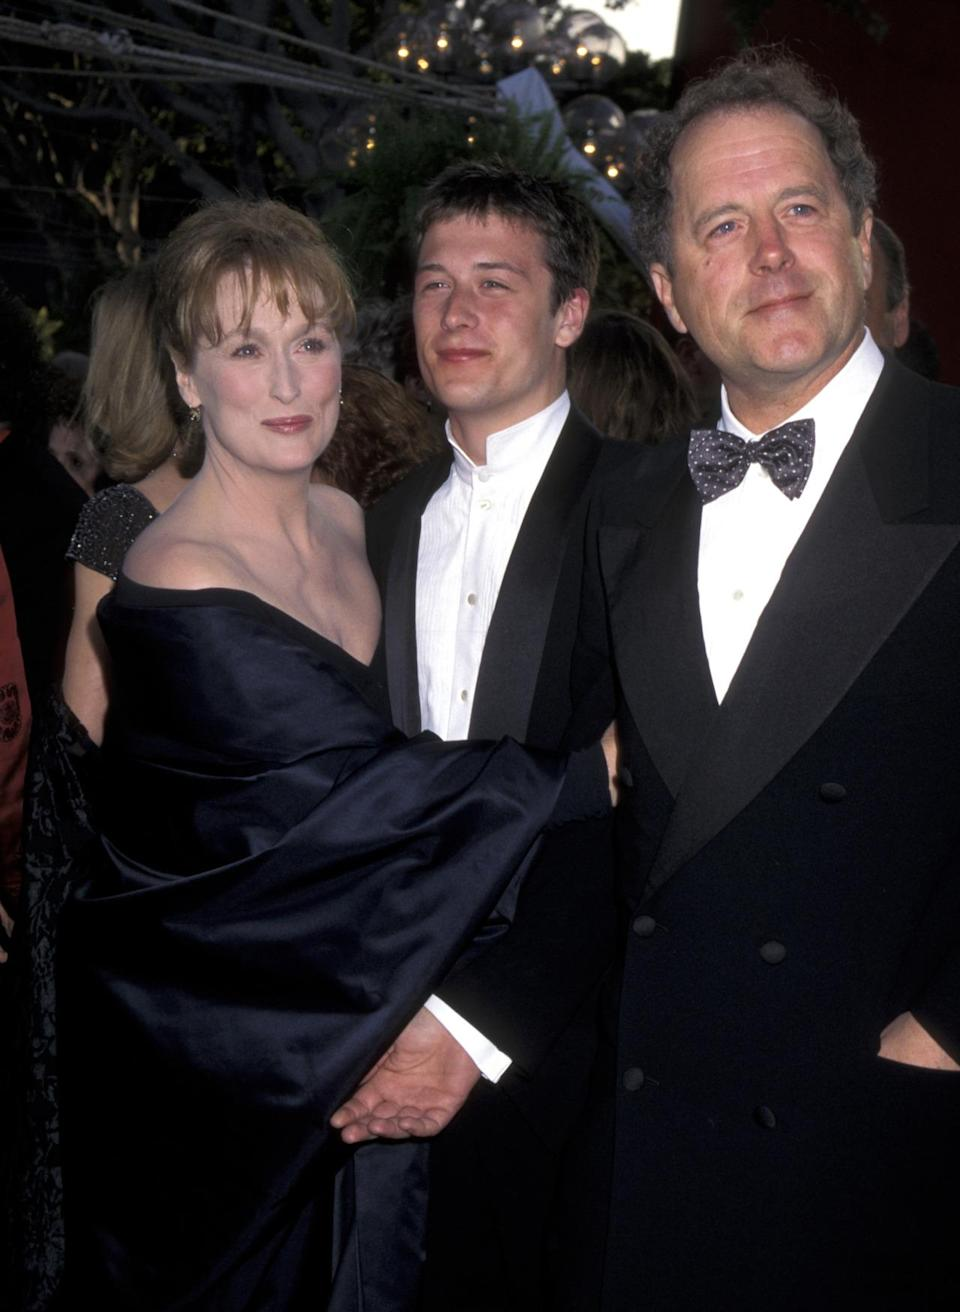 """<p>Huddled with her husband, Don Gummer and their son Henry, Streep wore a Donna Karan dress when she was nominated for <a rel=""""nofollow noopener"""" href=""""http://www.imdb.com/title/tt0112579/?ref_=nmawd_awd_10"""" target=""""_blank"""" data-ylk=""""slk:The Bridges of Madison County."""" class=""""link rapid-noclick-resp""""><i>The Bridges of Madison County.</i></a></p>"""